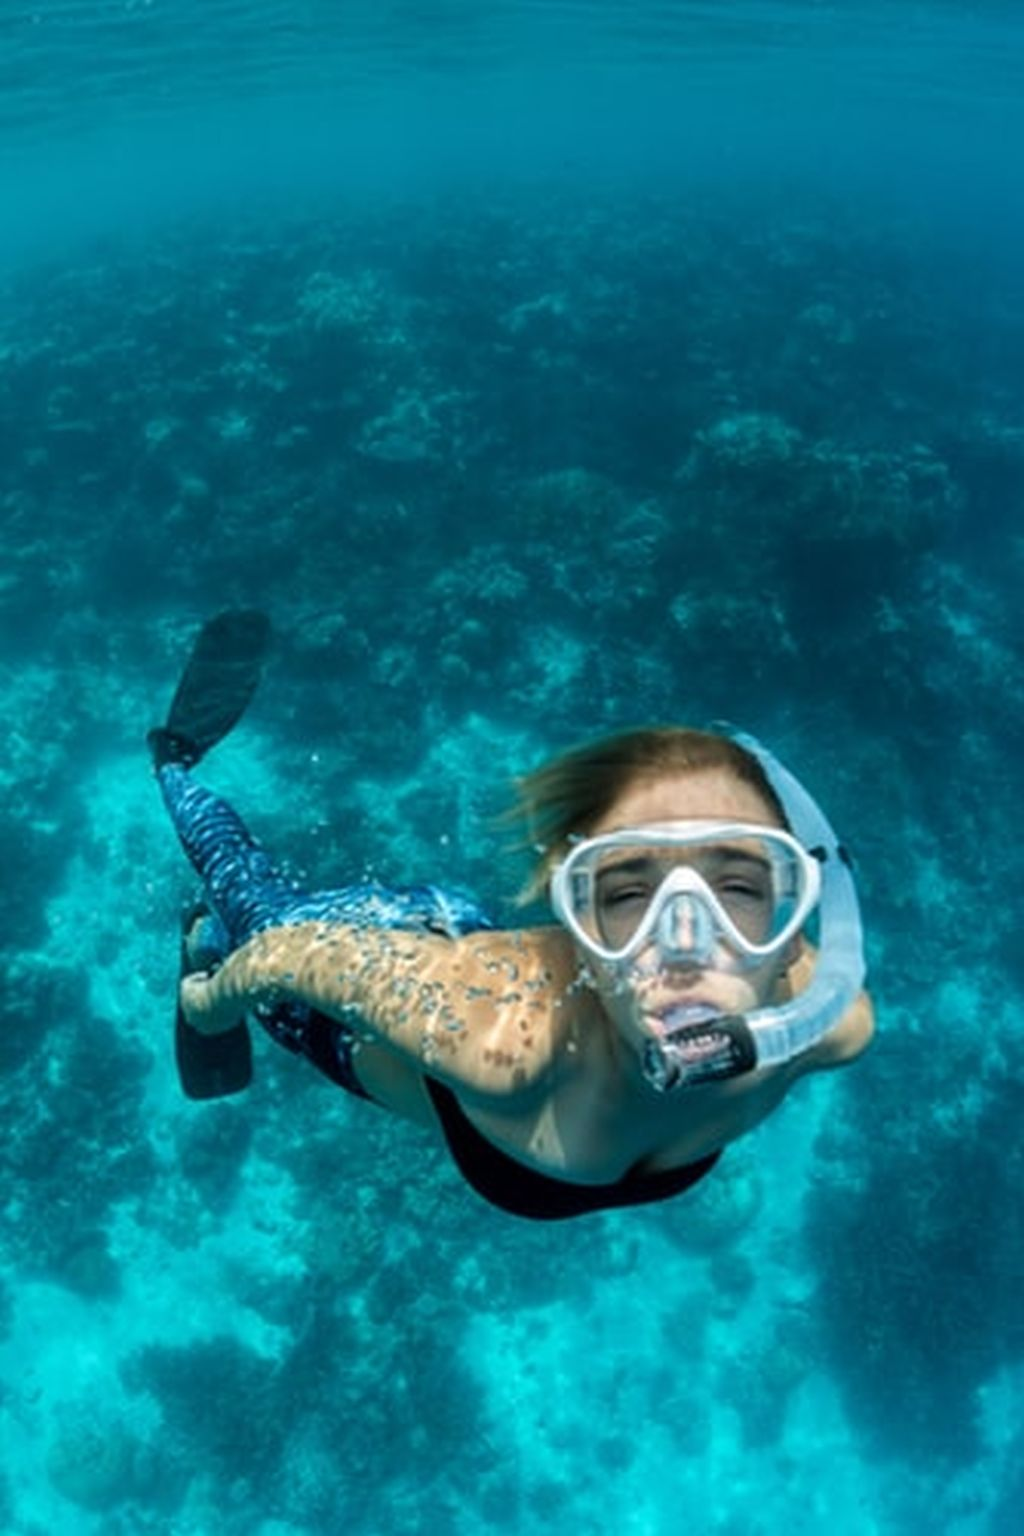 Woman free diving wearing snorkel and fins underwater with reef in background